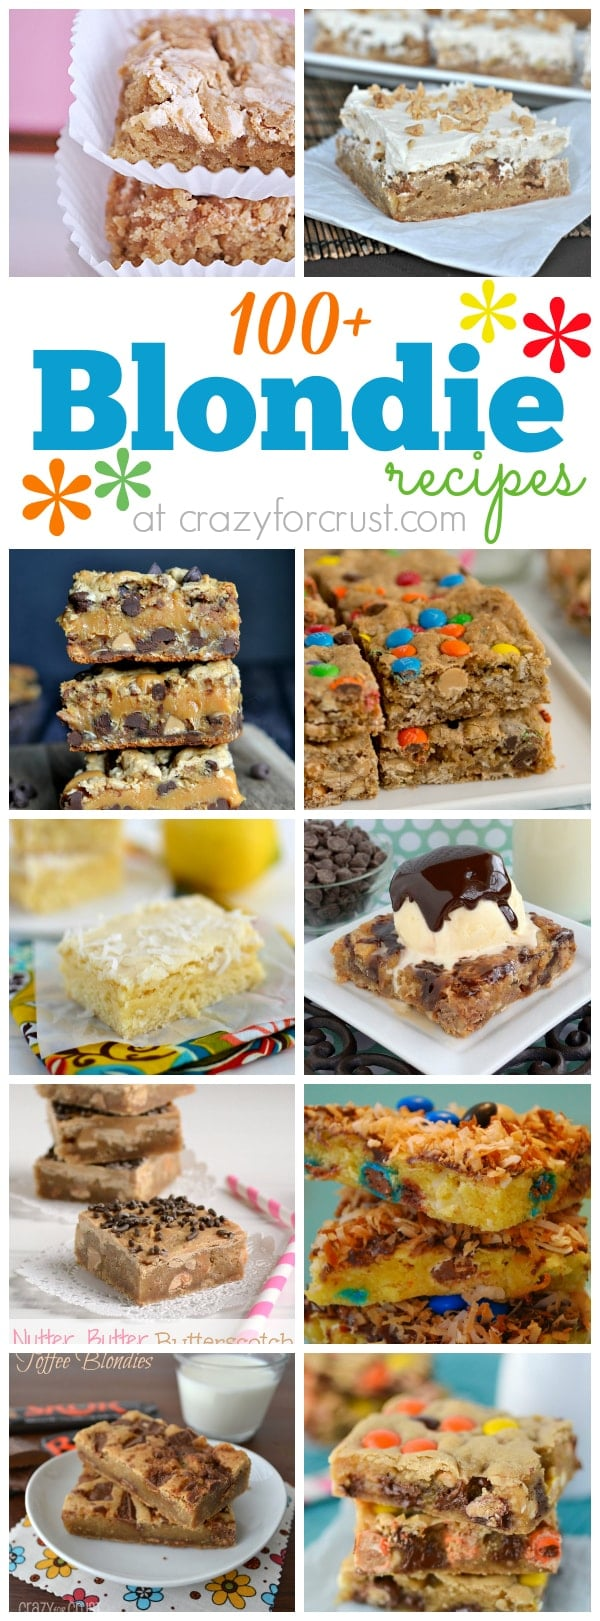 Over 100 Blondie Recipes collage